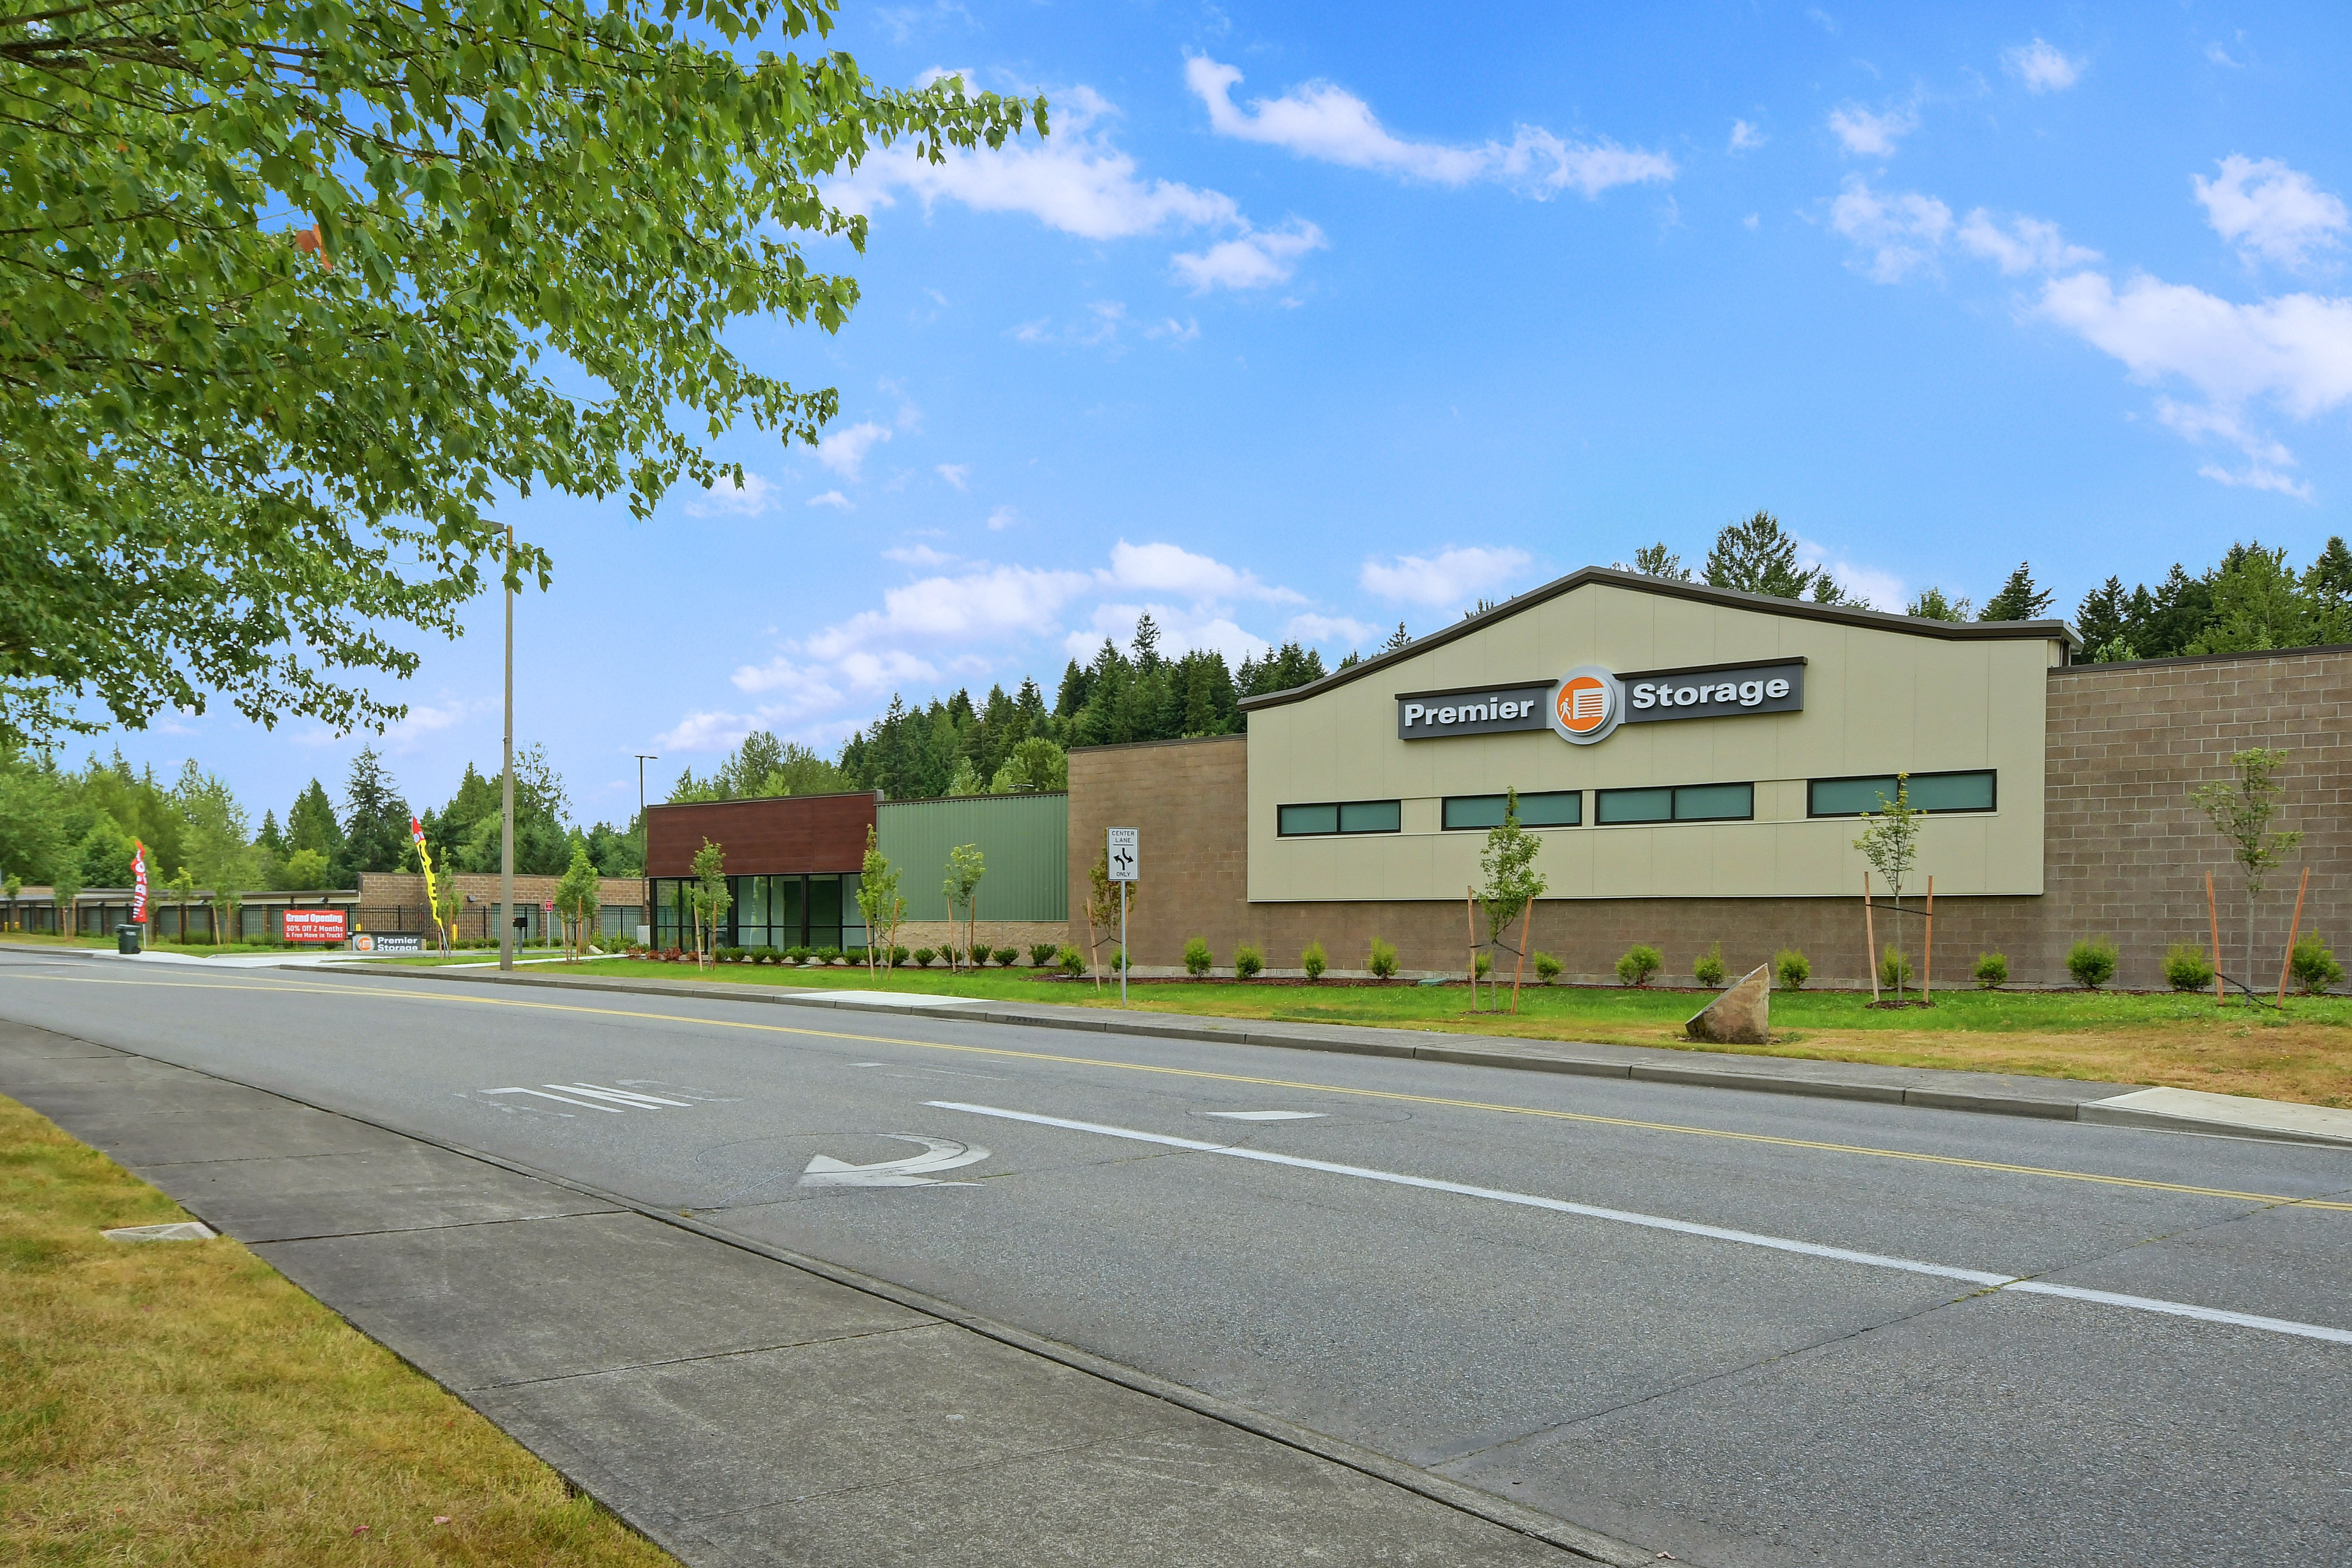 Premier Storage Bonney Lake